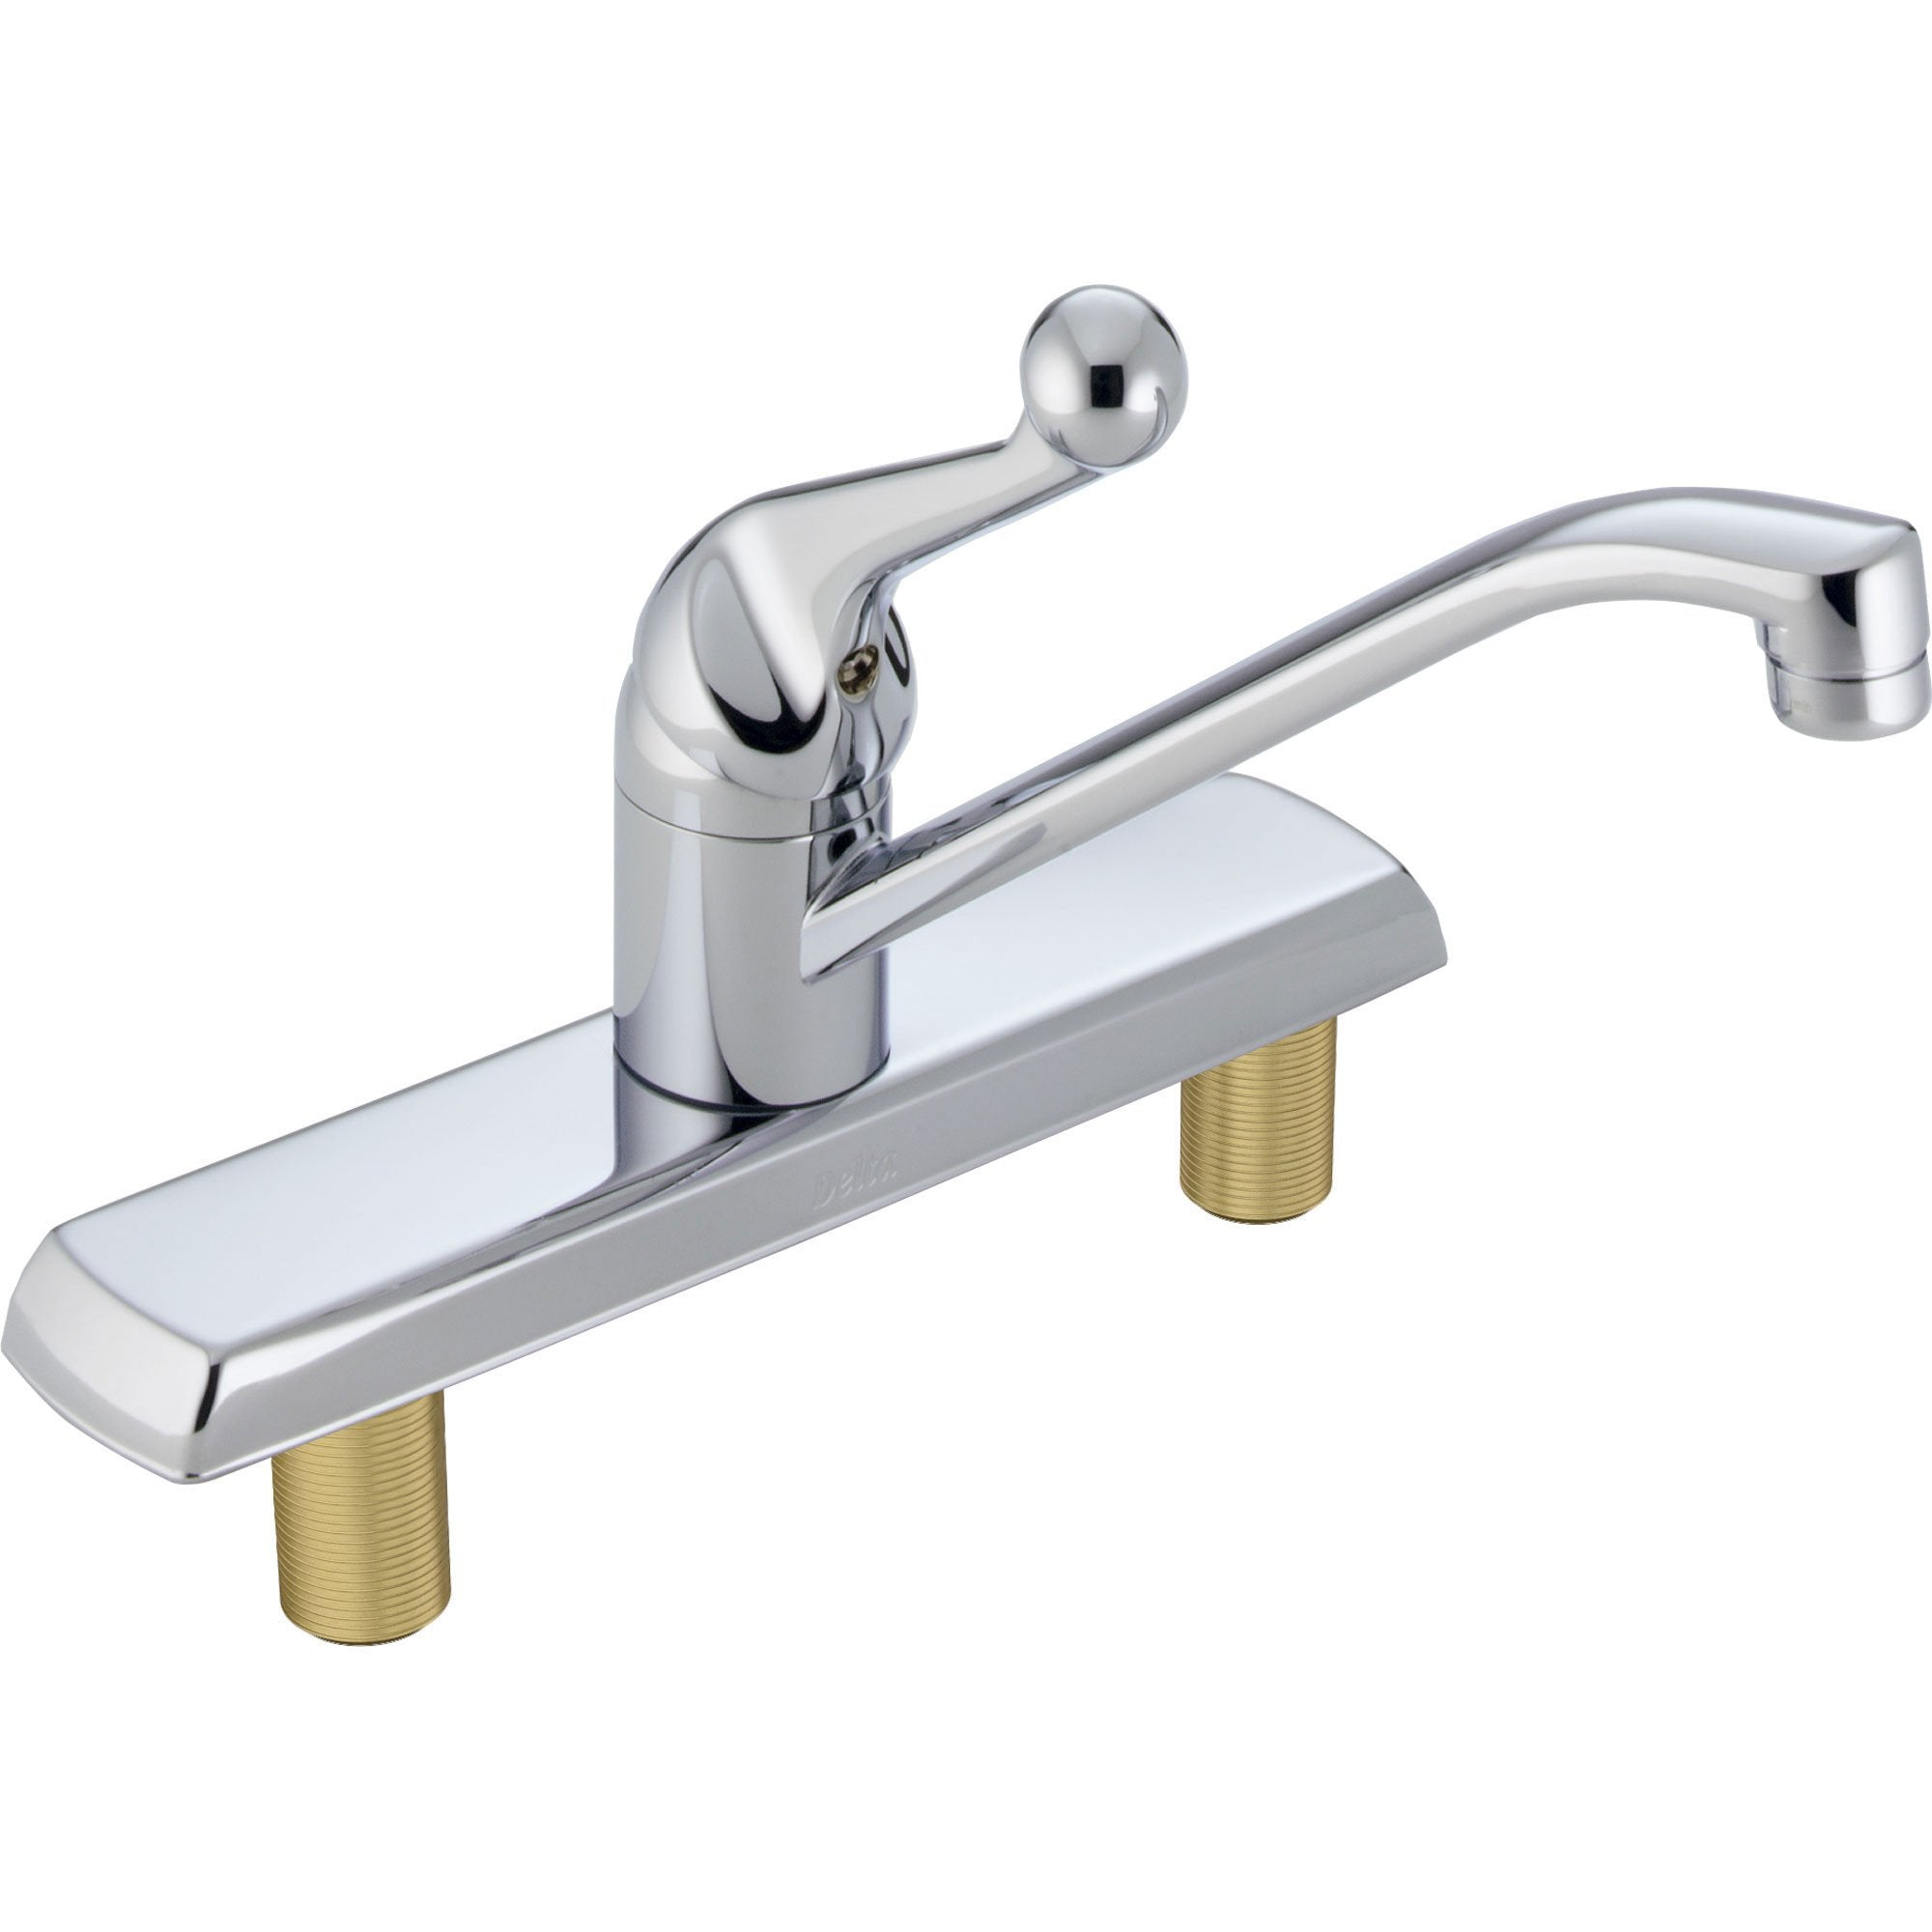 Delta Classic Standard Simple Chrome Single Handle Kitchen Faucet 614836